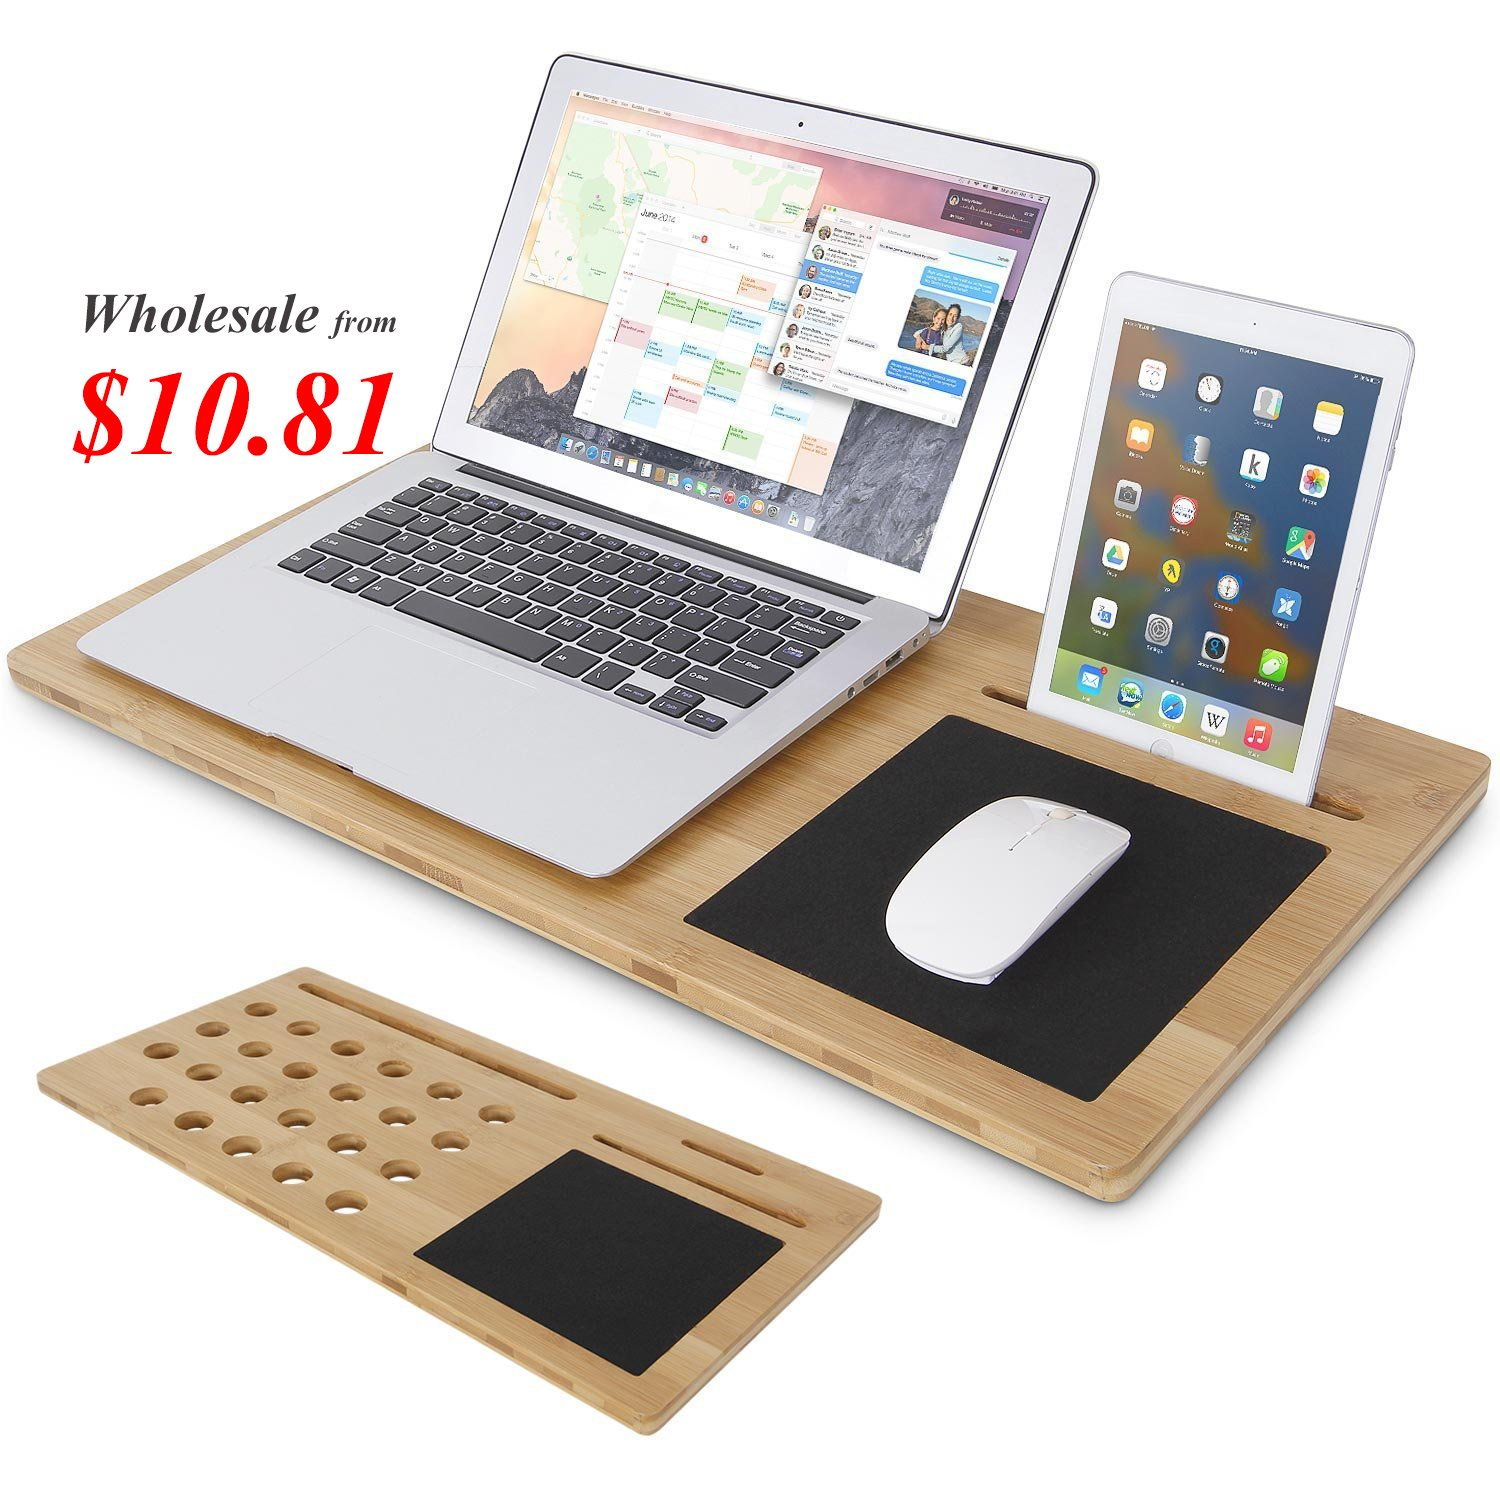 Lifewit Bamboo Laptop Table Slab